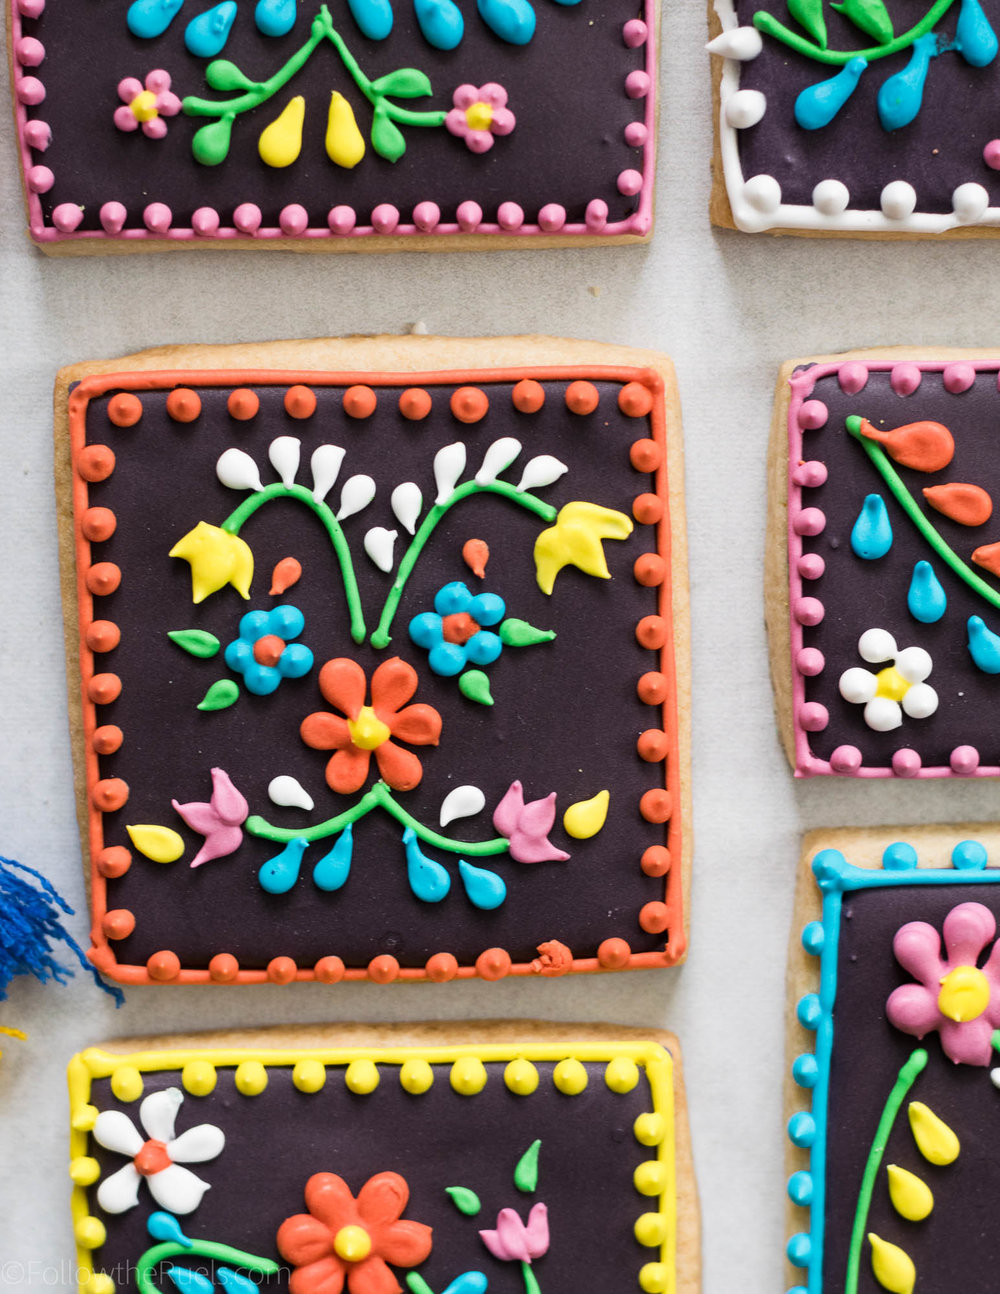 MExican-Embroidery-Cookies-2.jpg